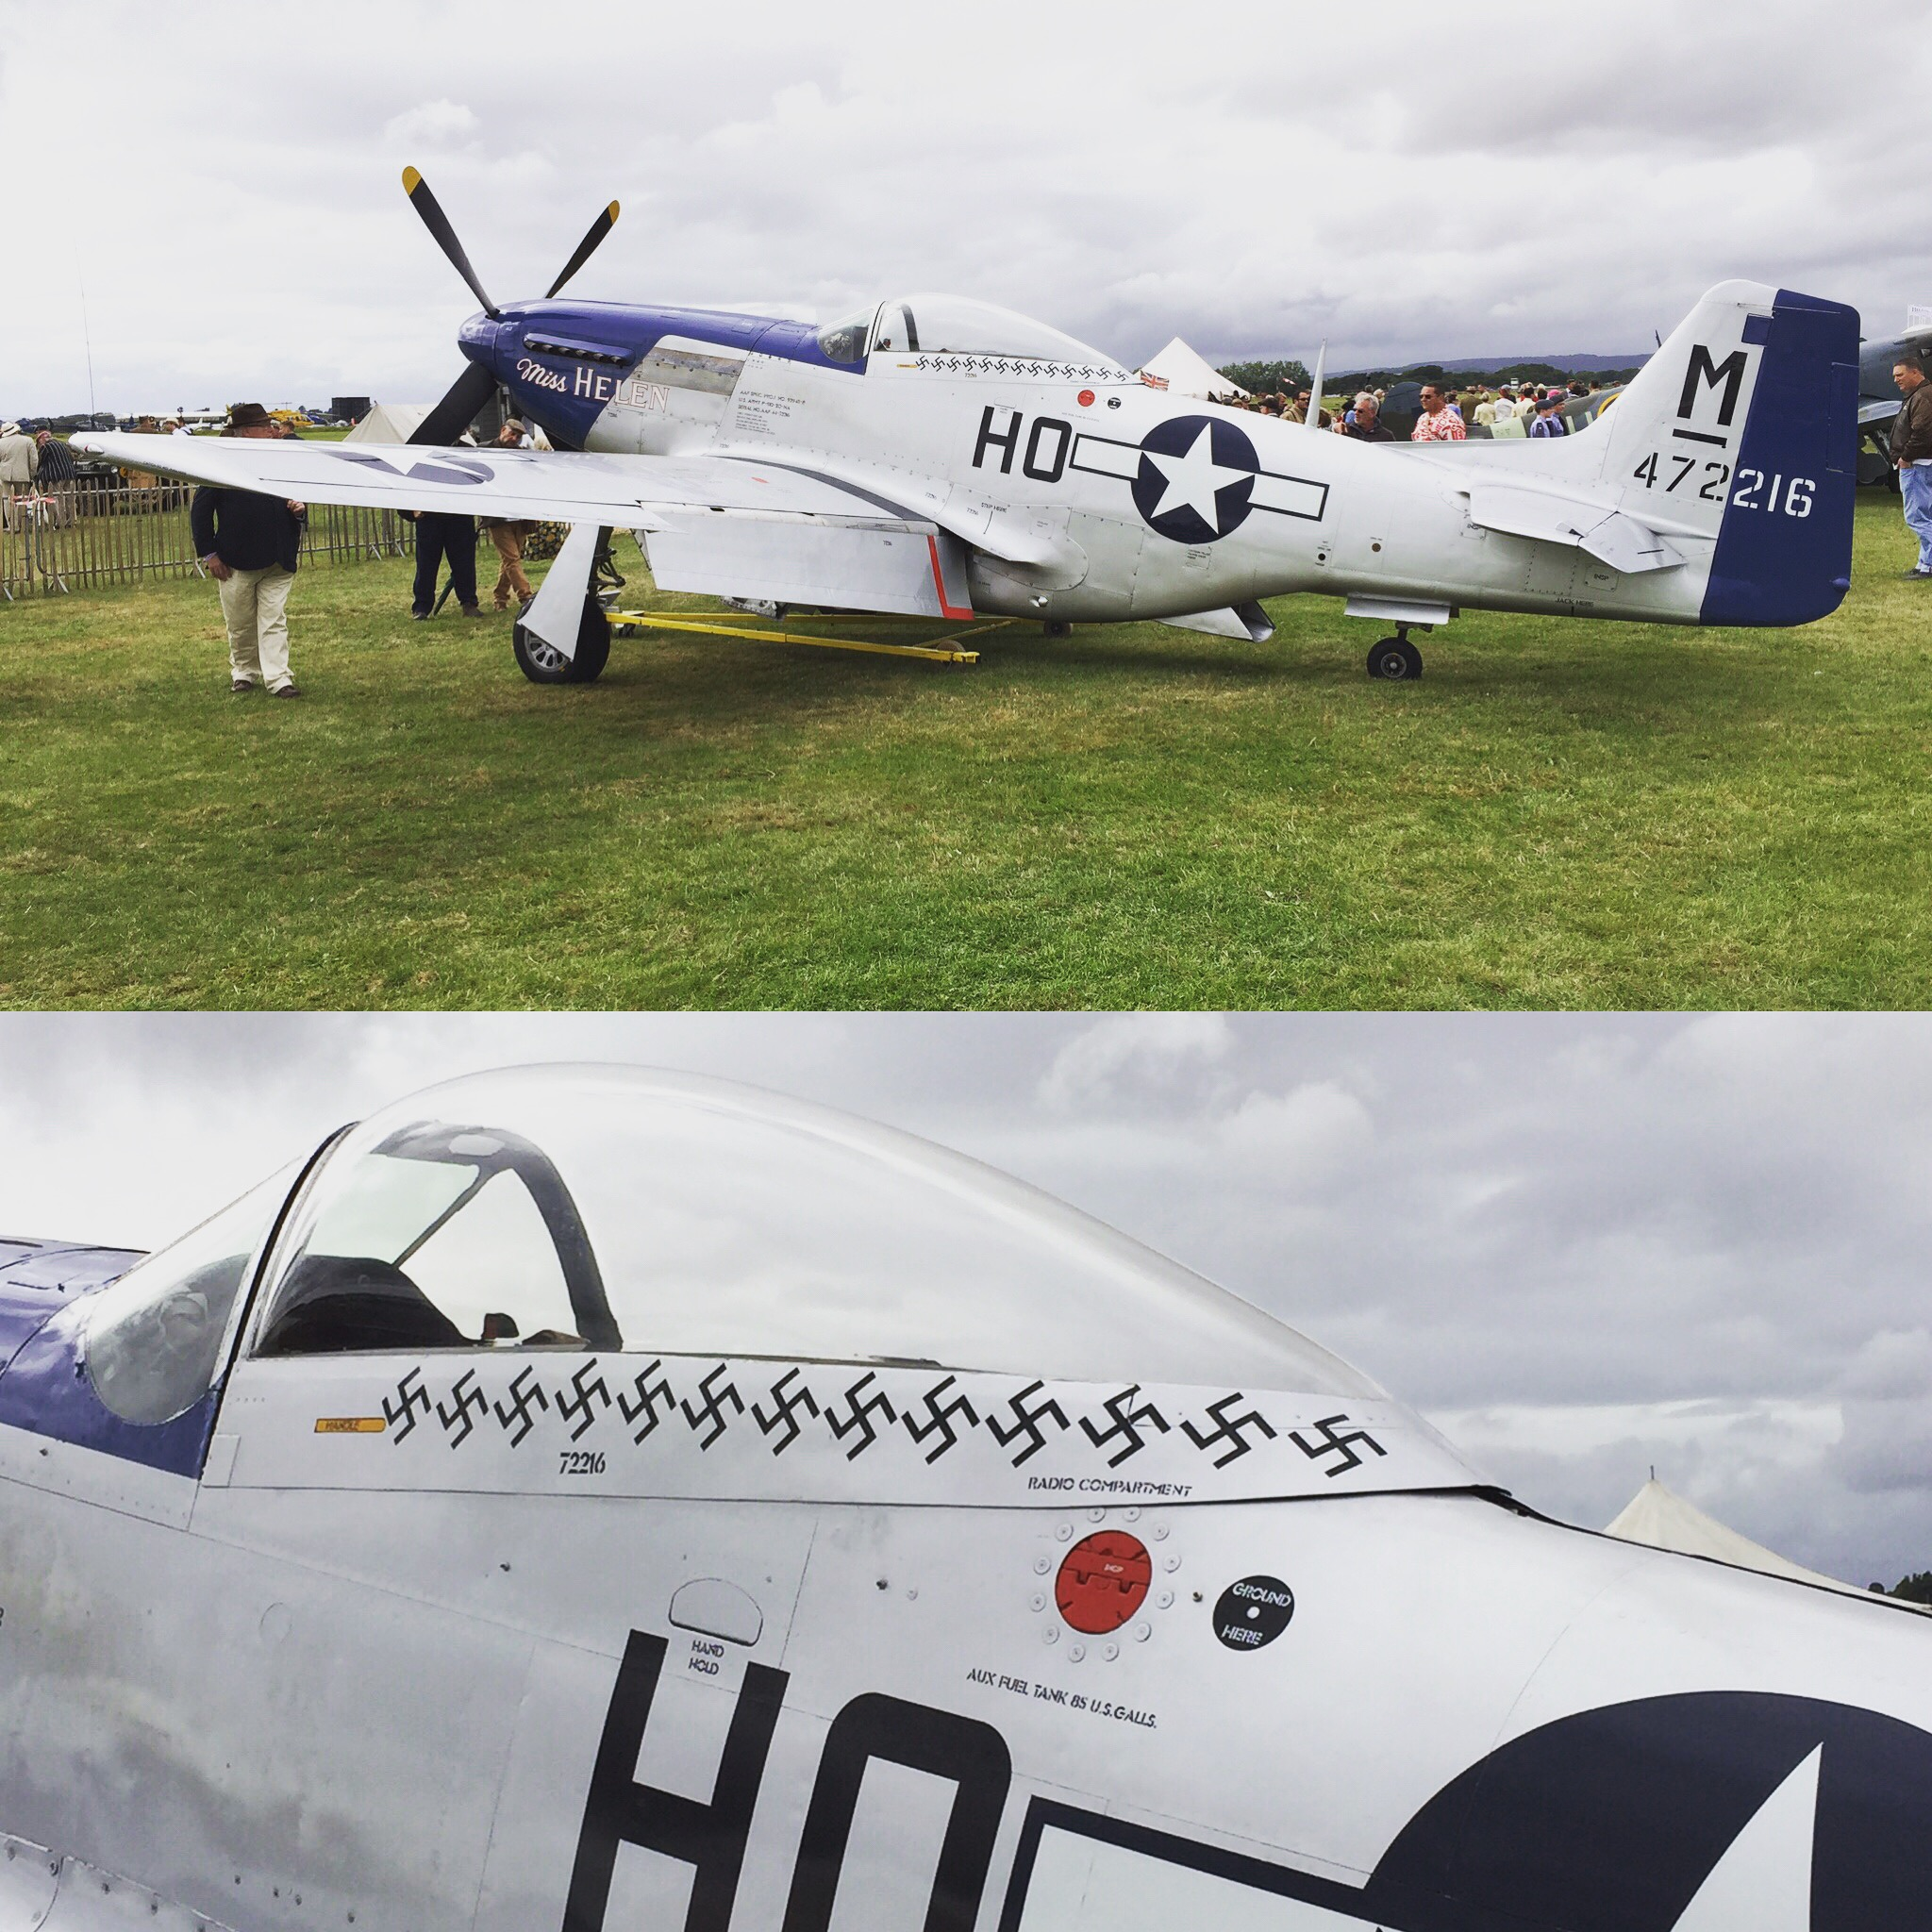 2016 Goodwood Revival World War 2 Plane